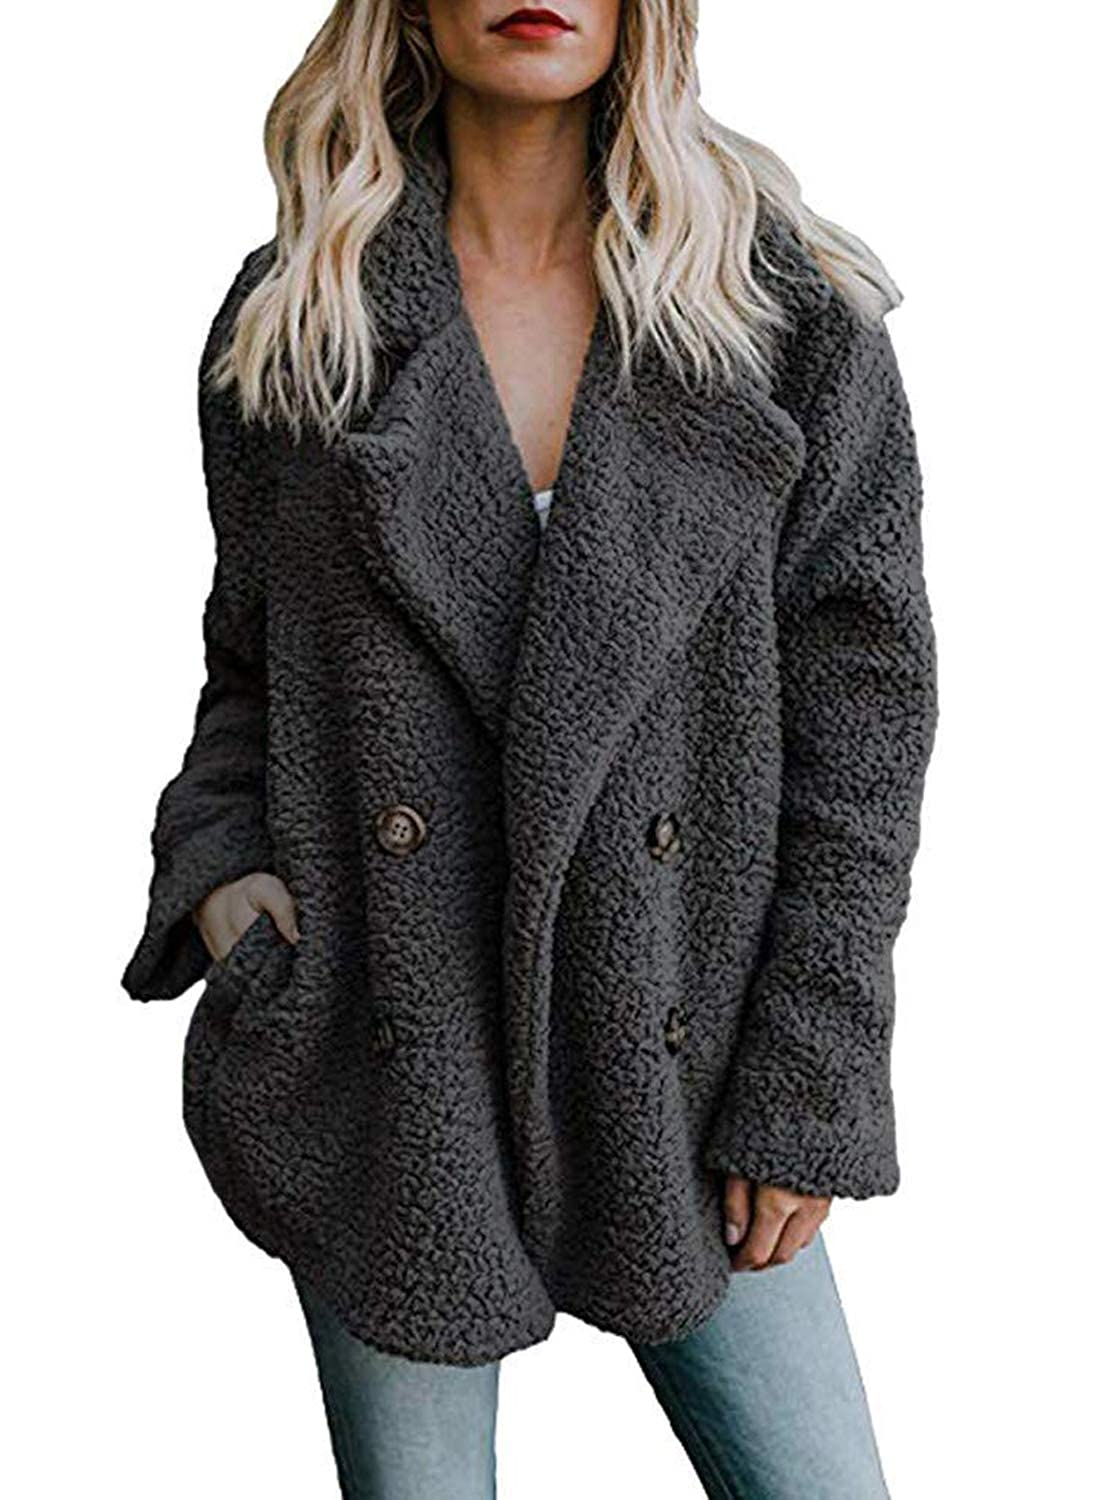 ETAOLINE Womens Winter Teddy Bear Coat Lapel Open Front Long Sleeve Fluffy Fleece Jacket Cardigan Outwear with Pockets